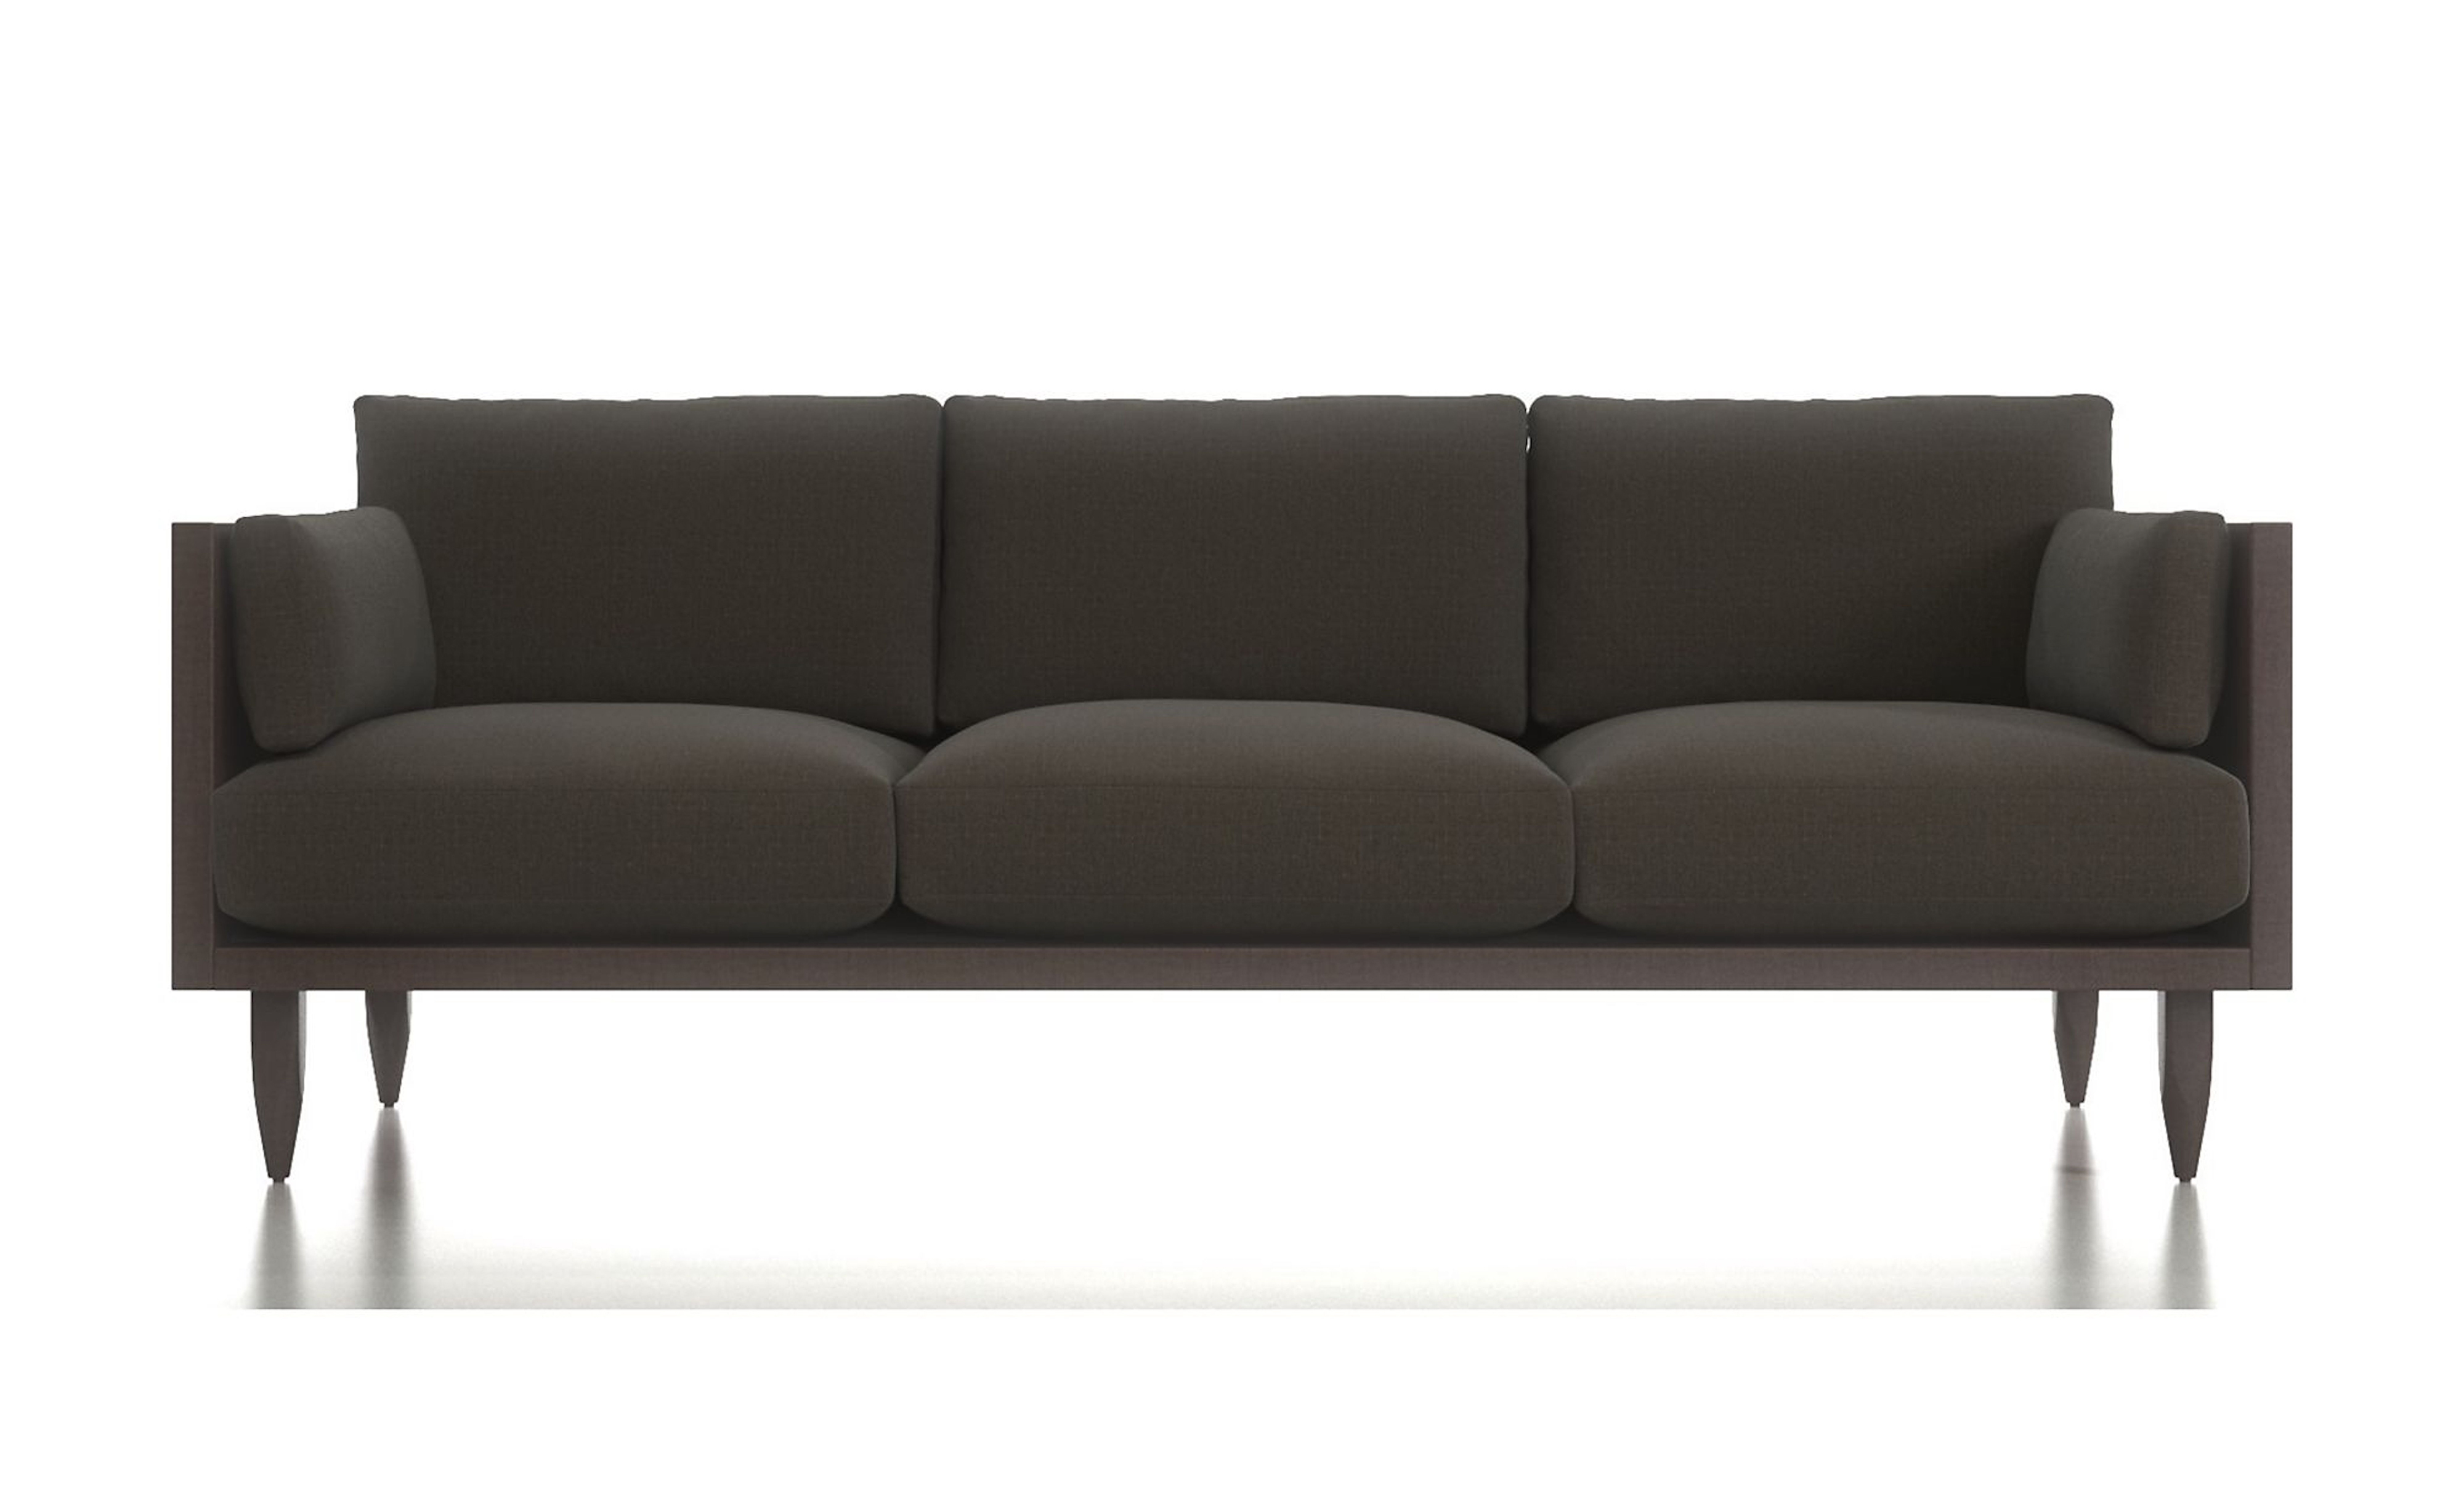 These Exposed Wood Frame Sofas Are A